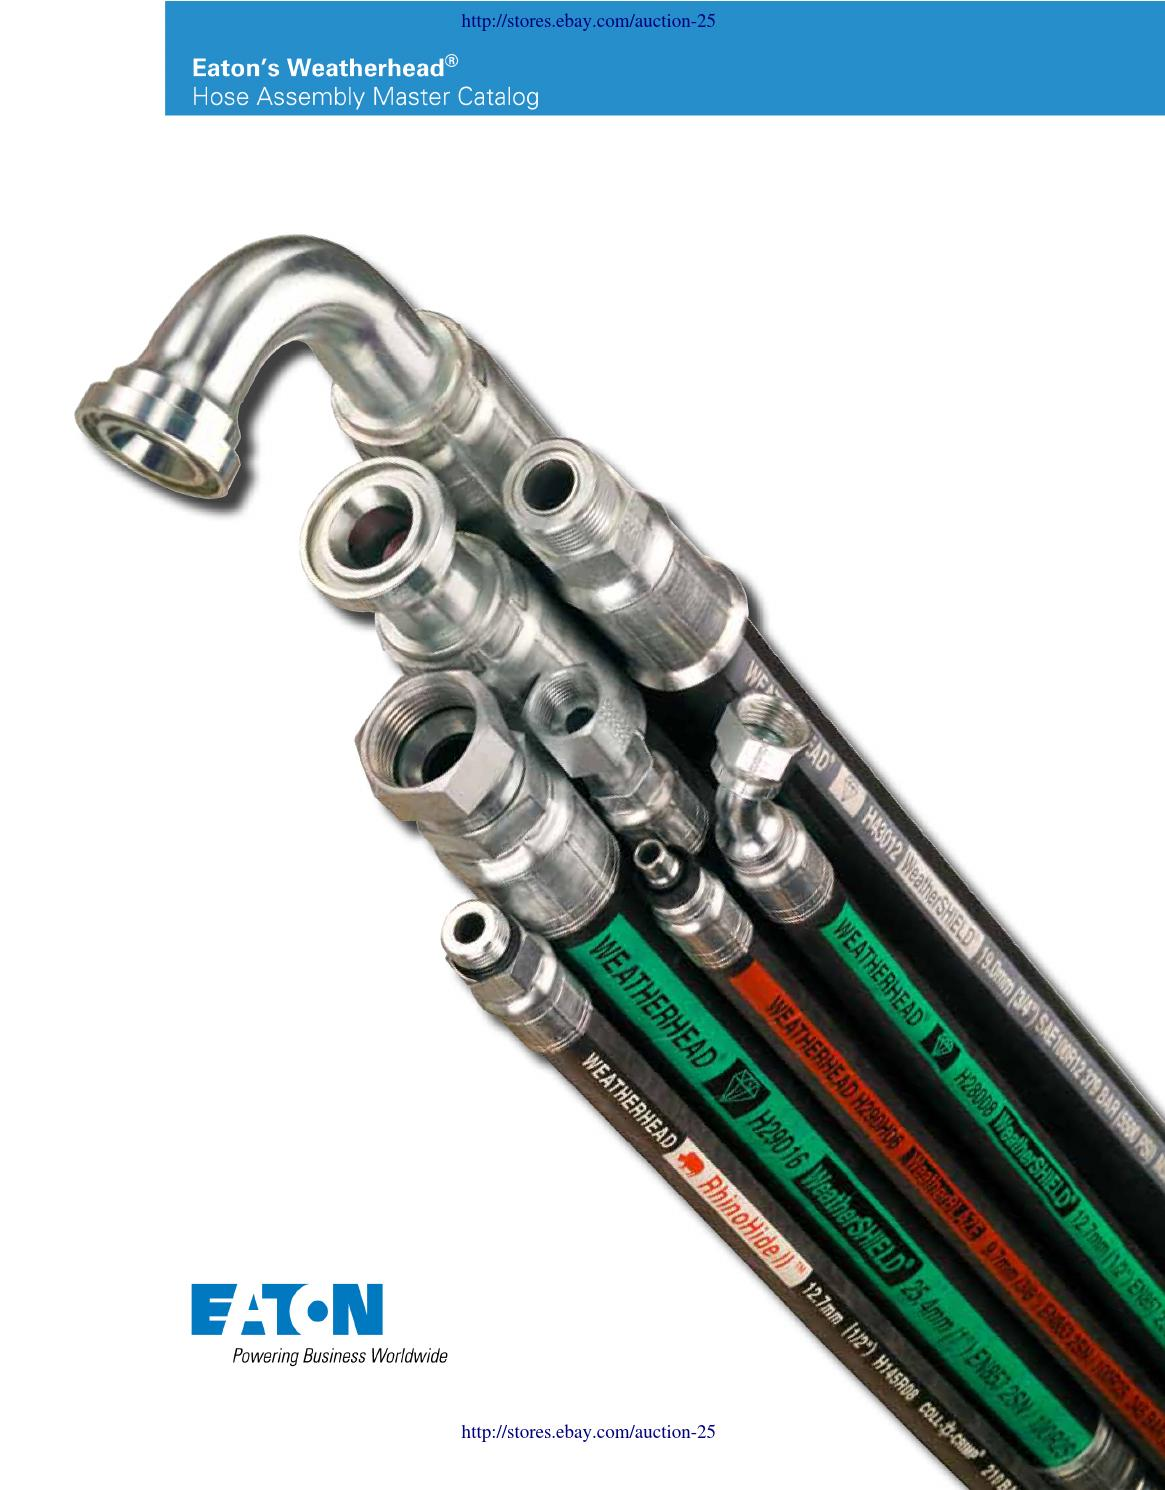 1//4 Tube Size 1//4 Hose ID 1//4 Tube Size EATON Weatherhead Coll-O-Crimp 04U-R04 Male Swivel Fitting 1//4 Hose ID Straight Thread O-Ring Low Carbon Steel